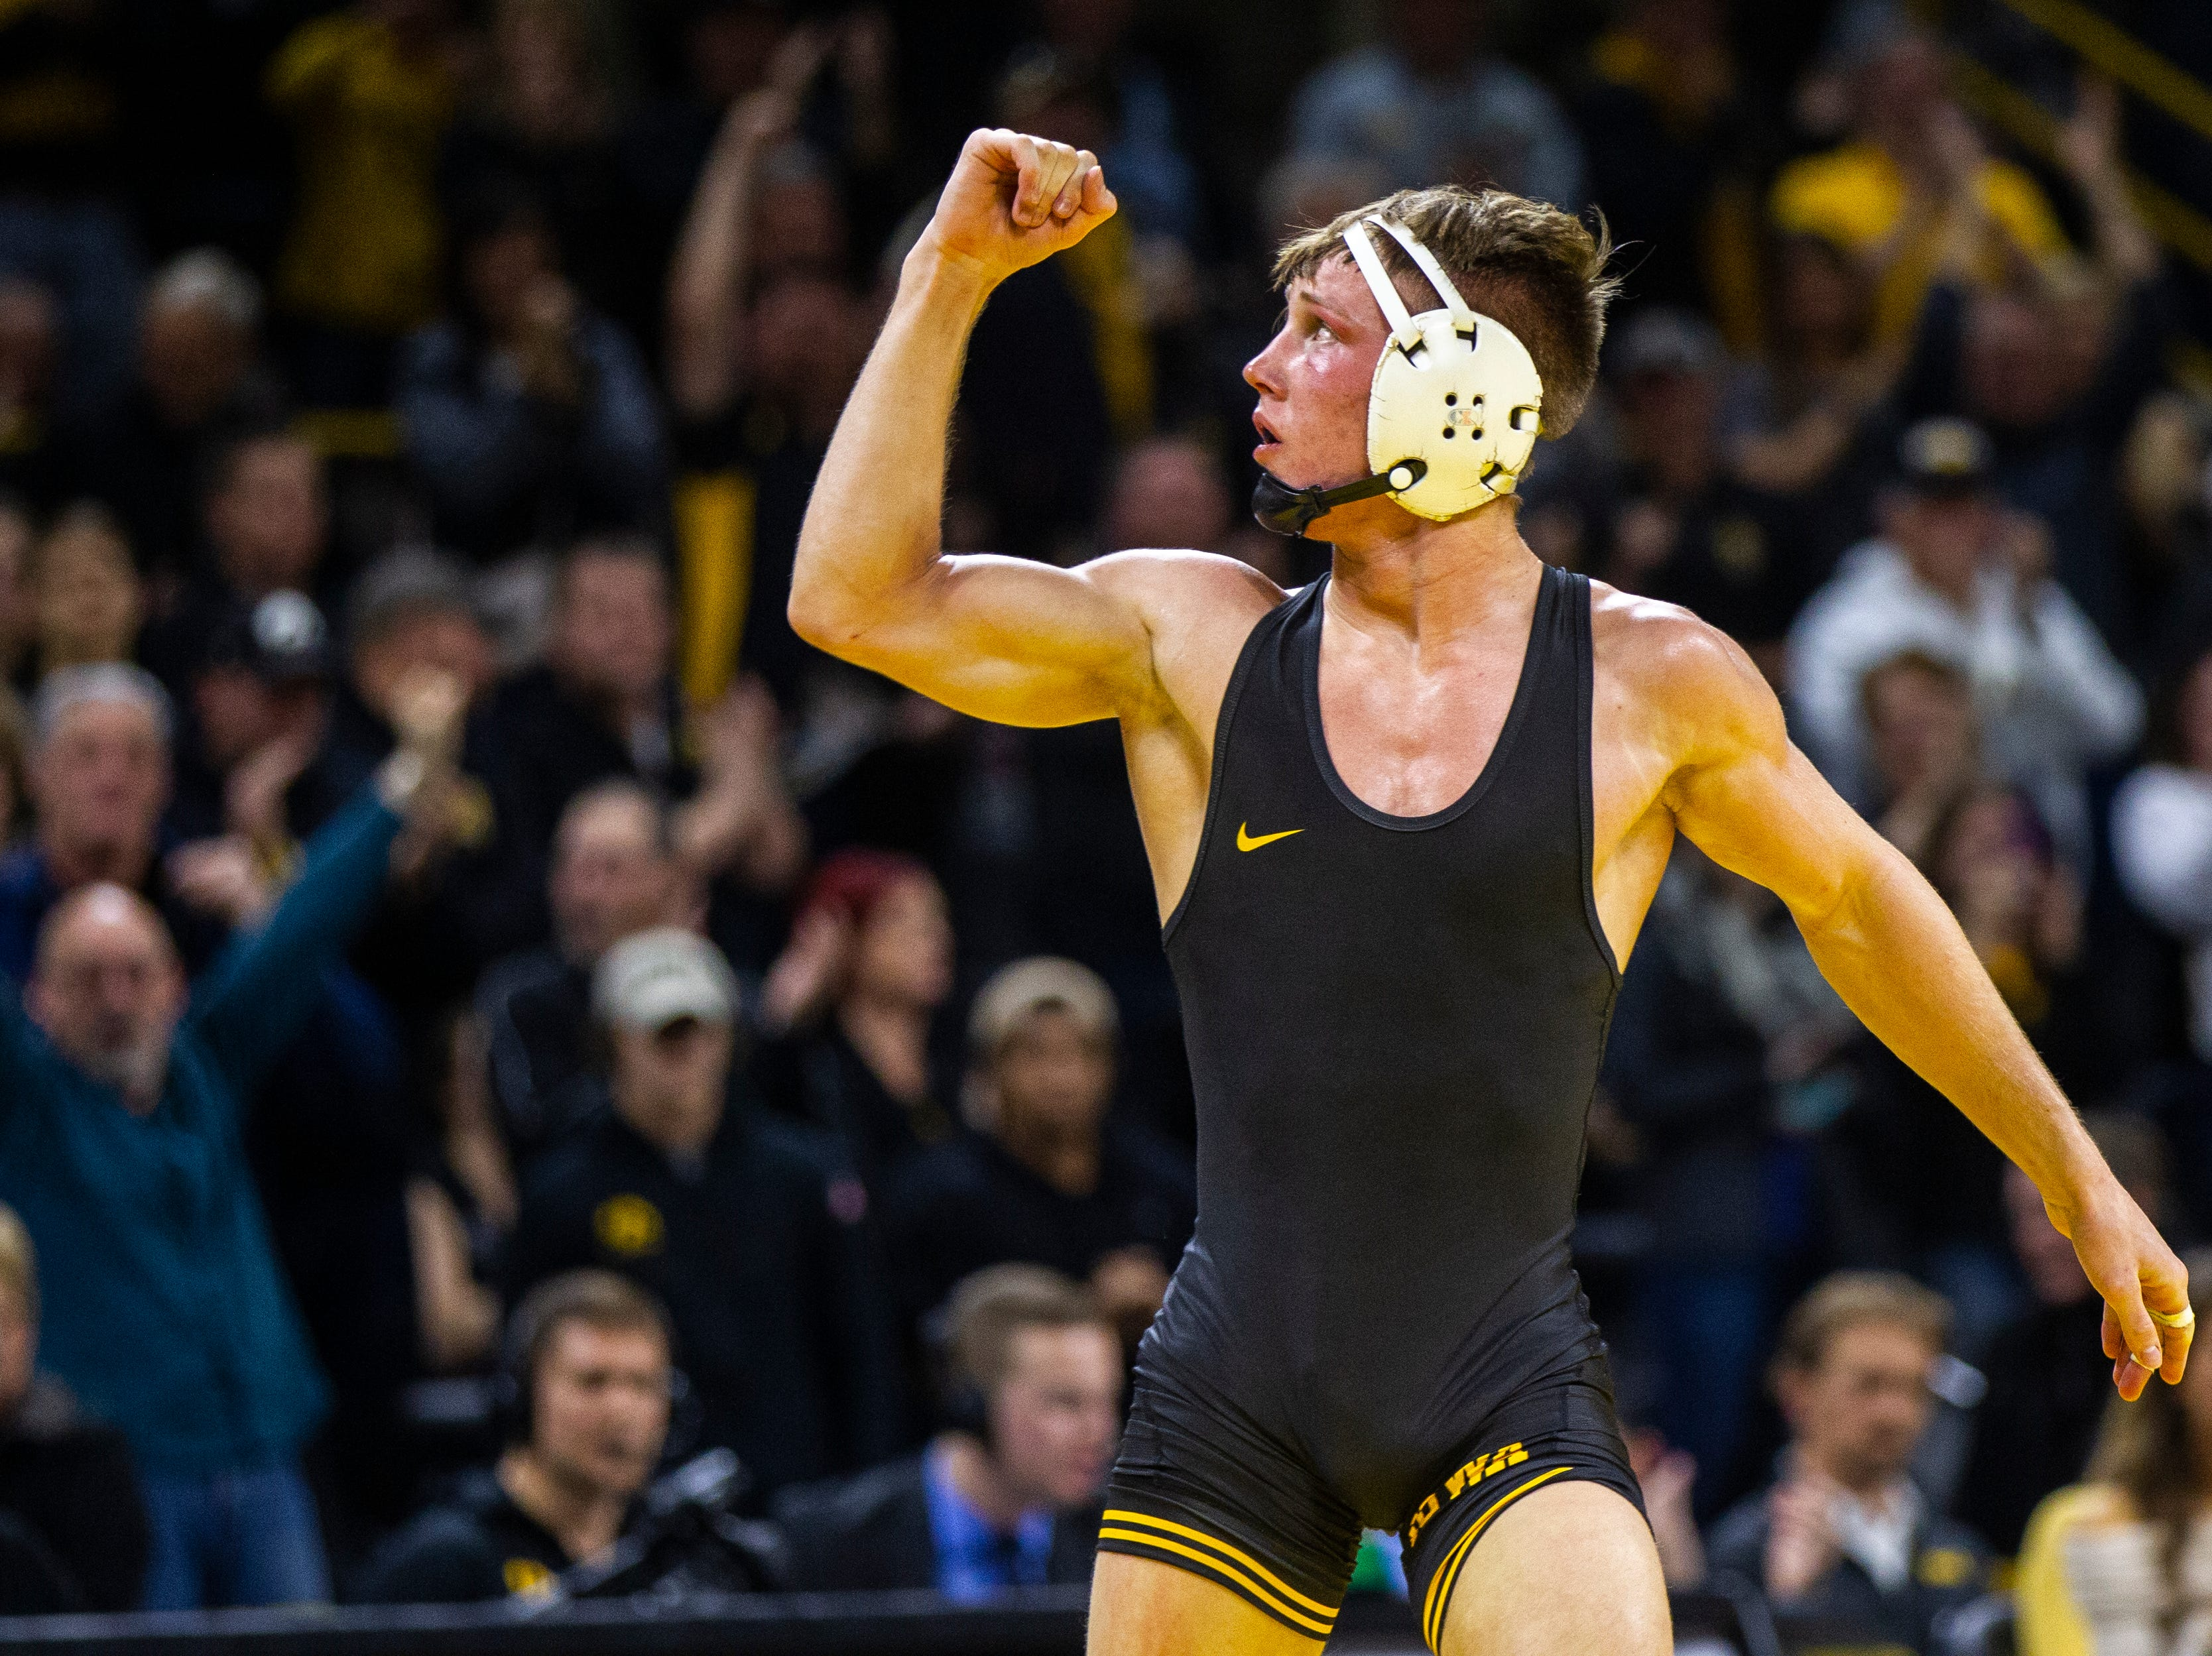 Iowa's Max Murin celebrates after pinning Princeton's Marshall Keller at 141 during an NCAA wrestle dual on Friday, Nov. 16, 2018, at Carver-Hawkeye Arena in Iowa City.